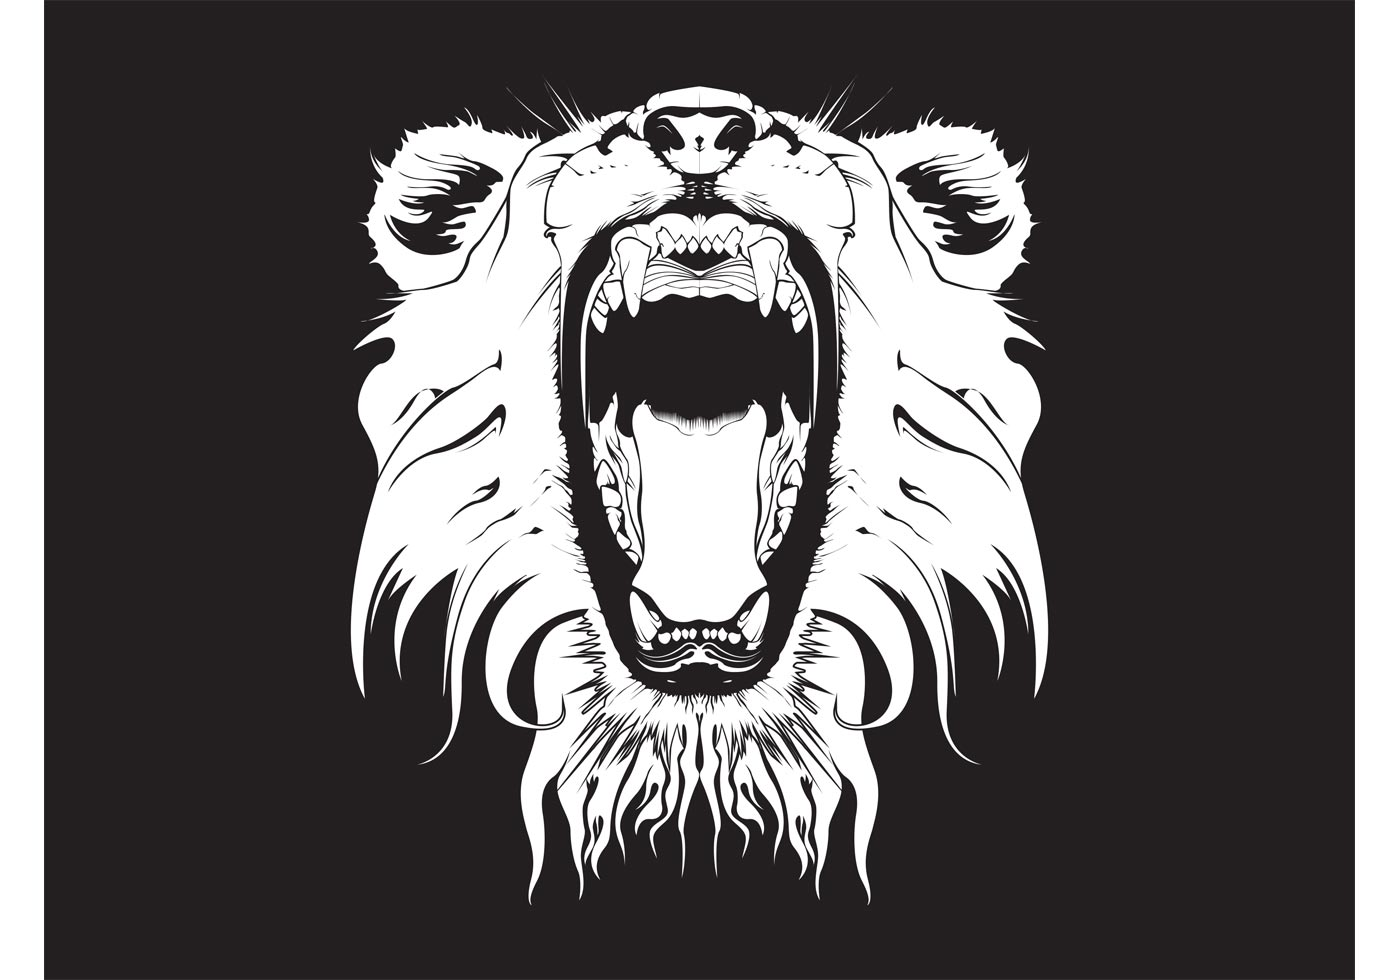 Image Of A Roaring Lion Dowload: (7493 Free Downloads